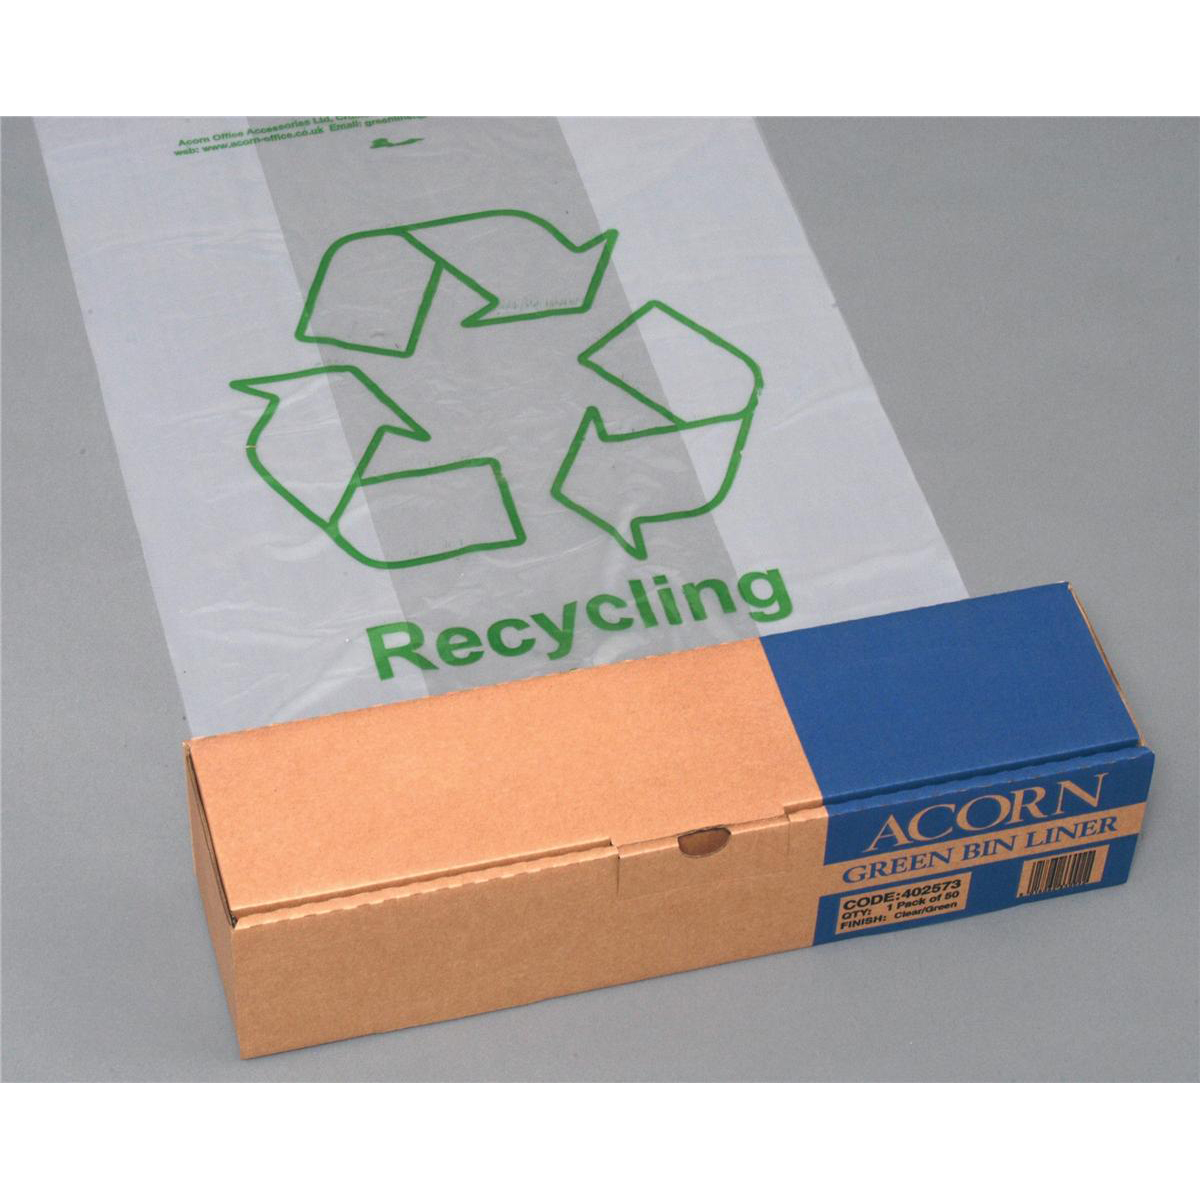 Acorn Green Bin Liners Capacity 60 Litres 630x860mm Clear and Printed Ref 402573 [Pack 50]